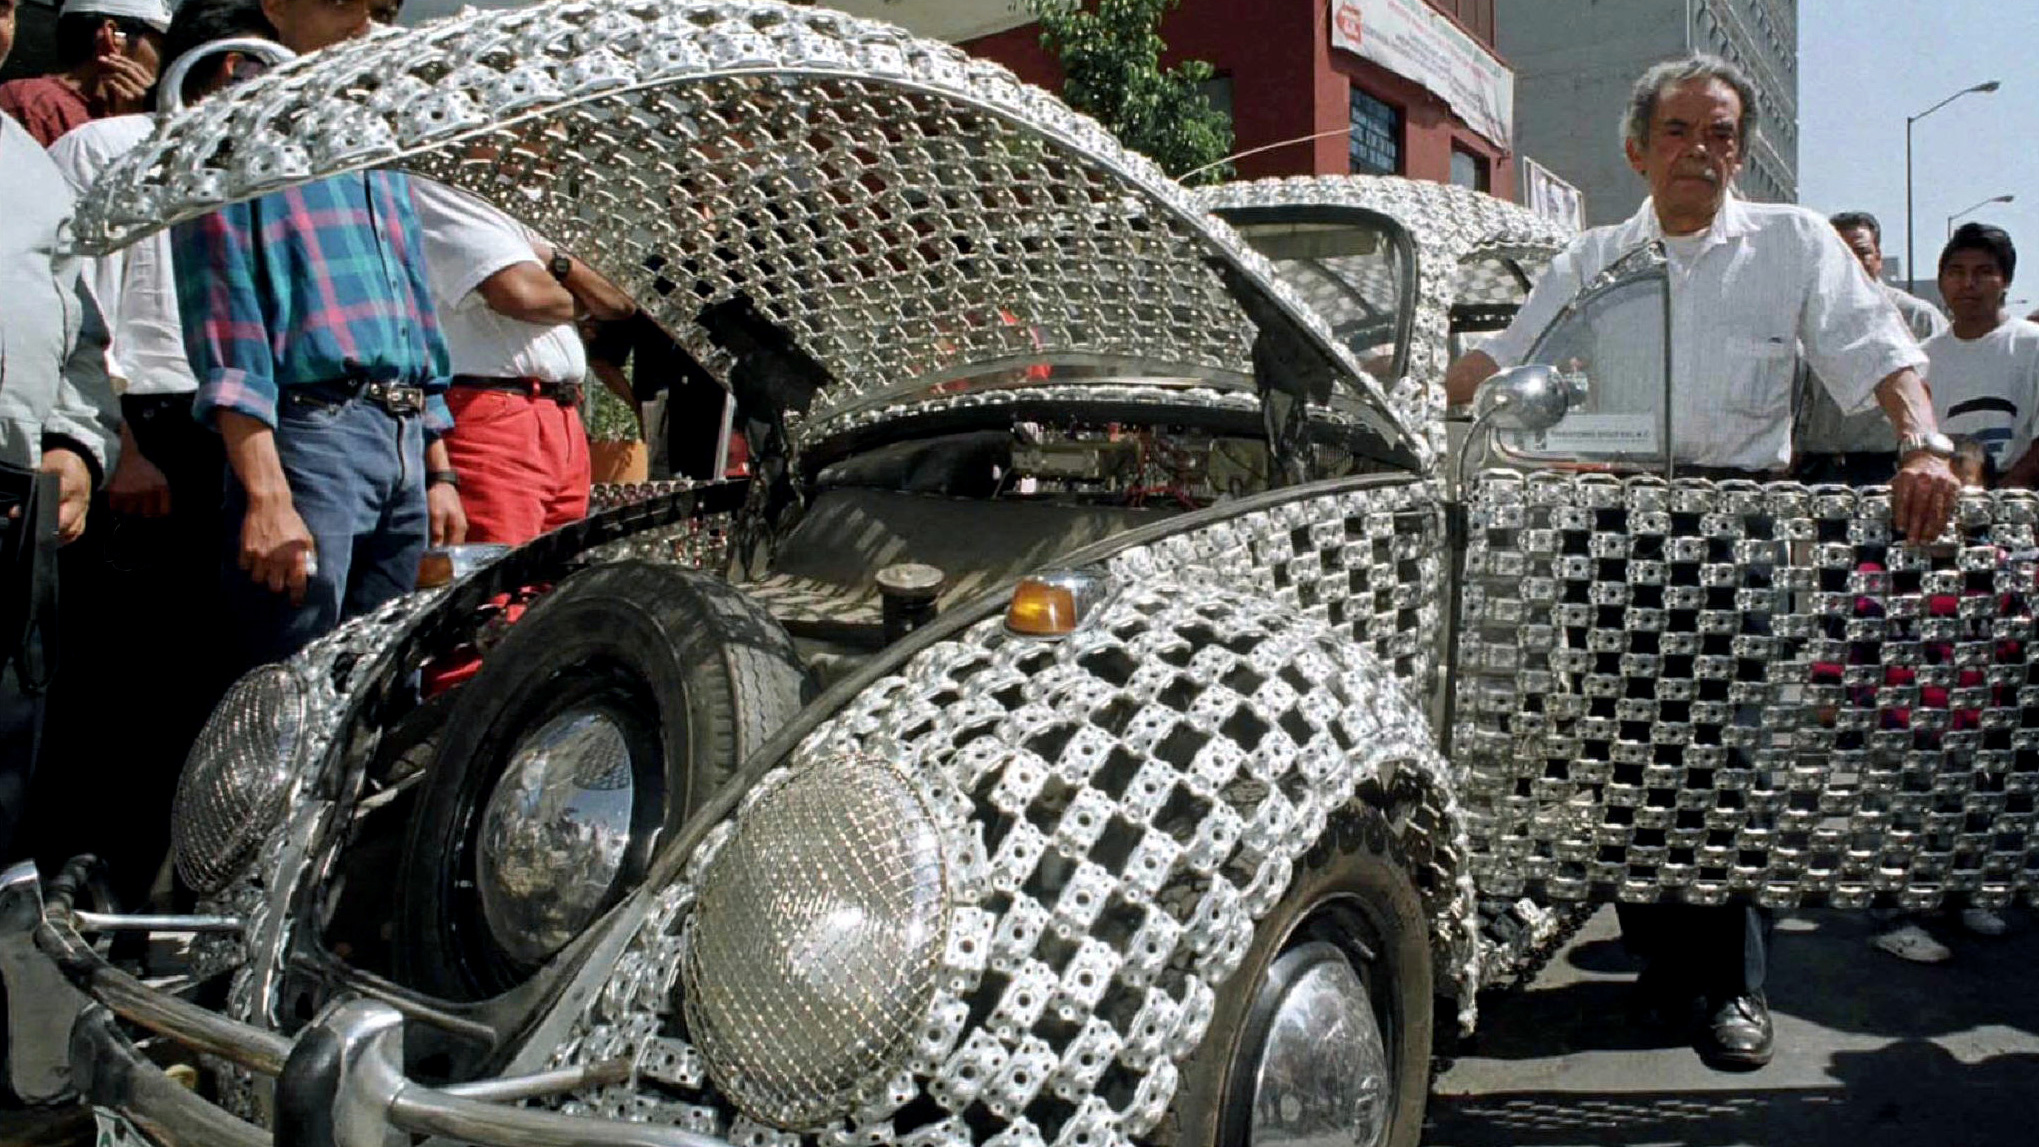 a custom vw beetle in mexico